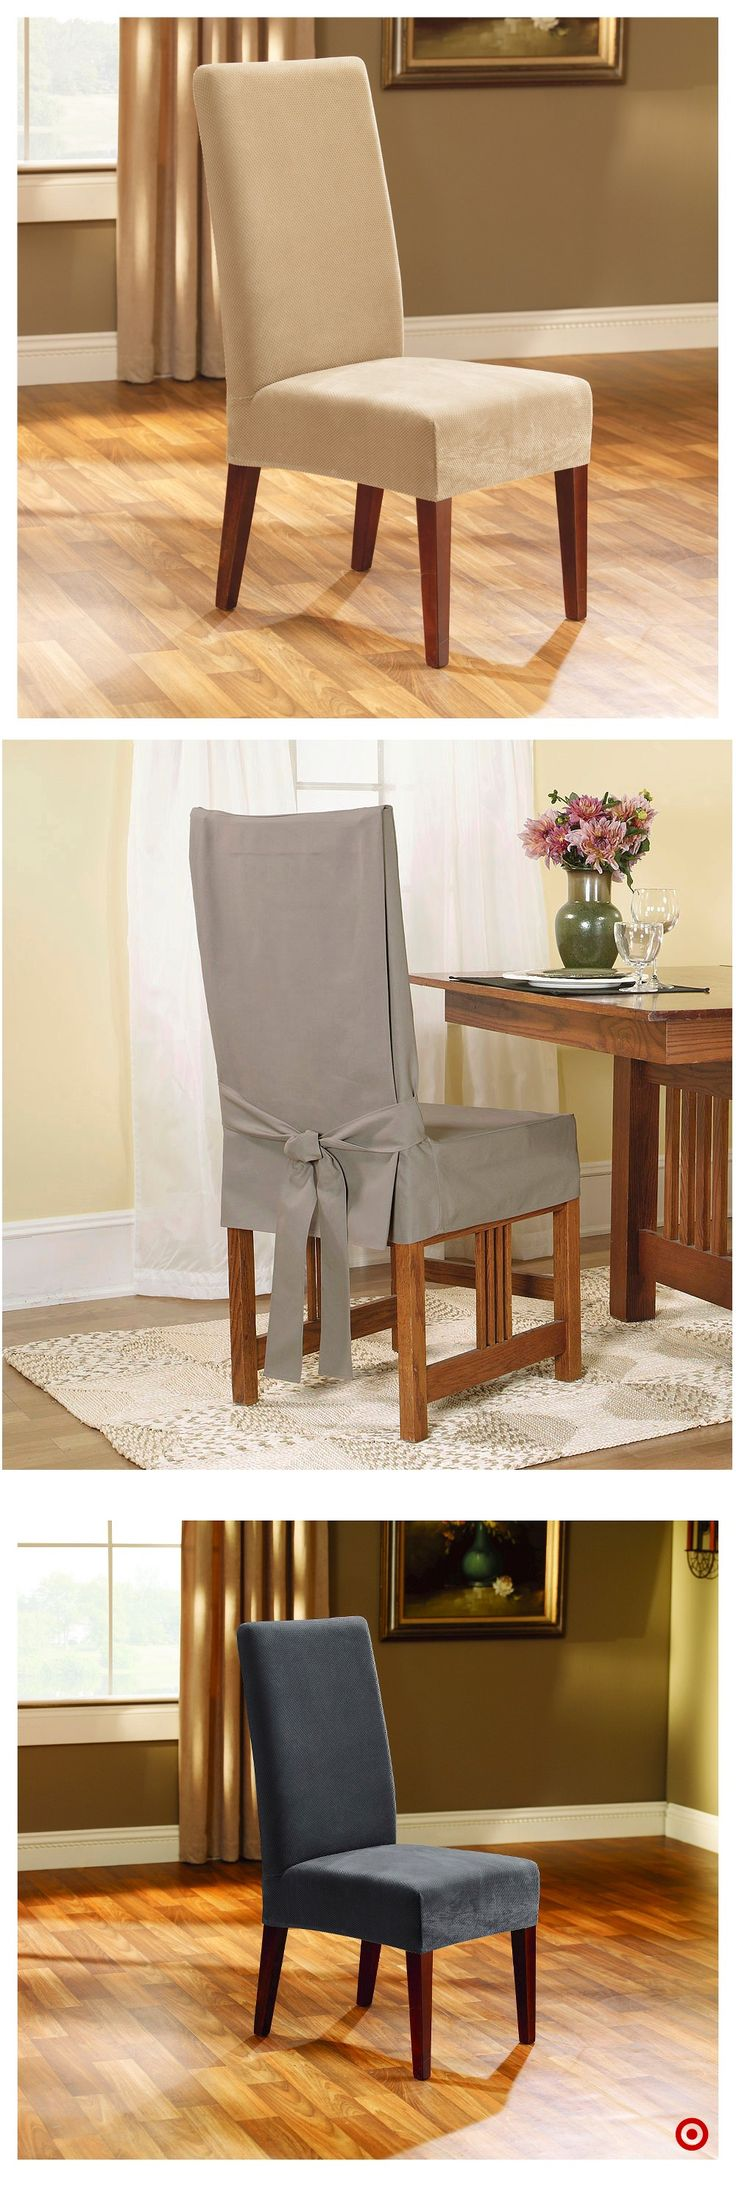 Shop Target for dining chair slipcover you will love at great low prices. Free shipping on all orders or free same-day pick-up in store.